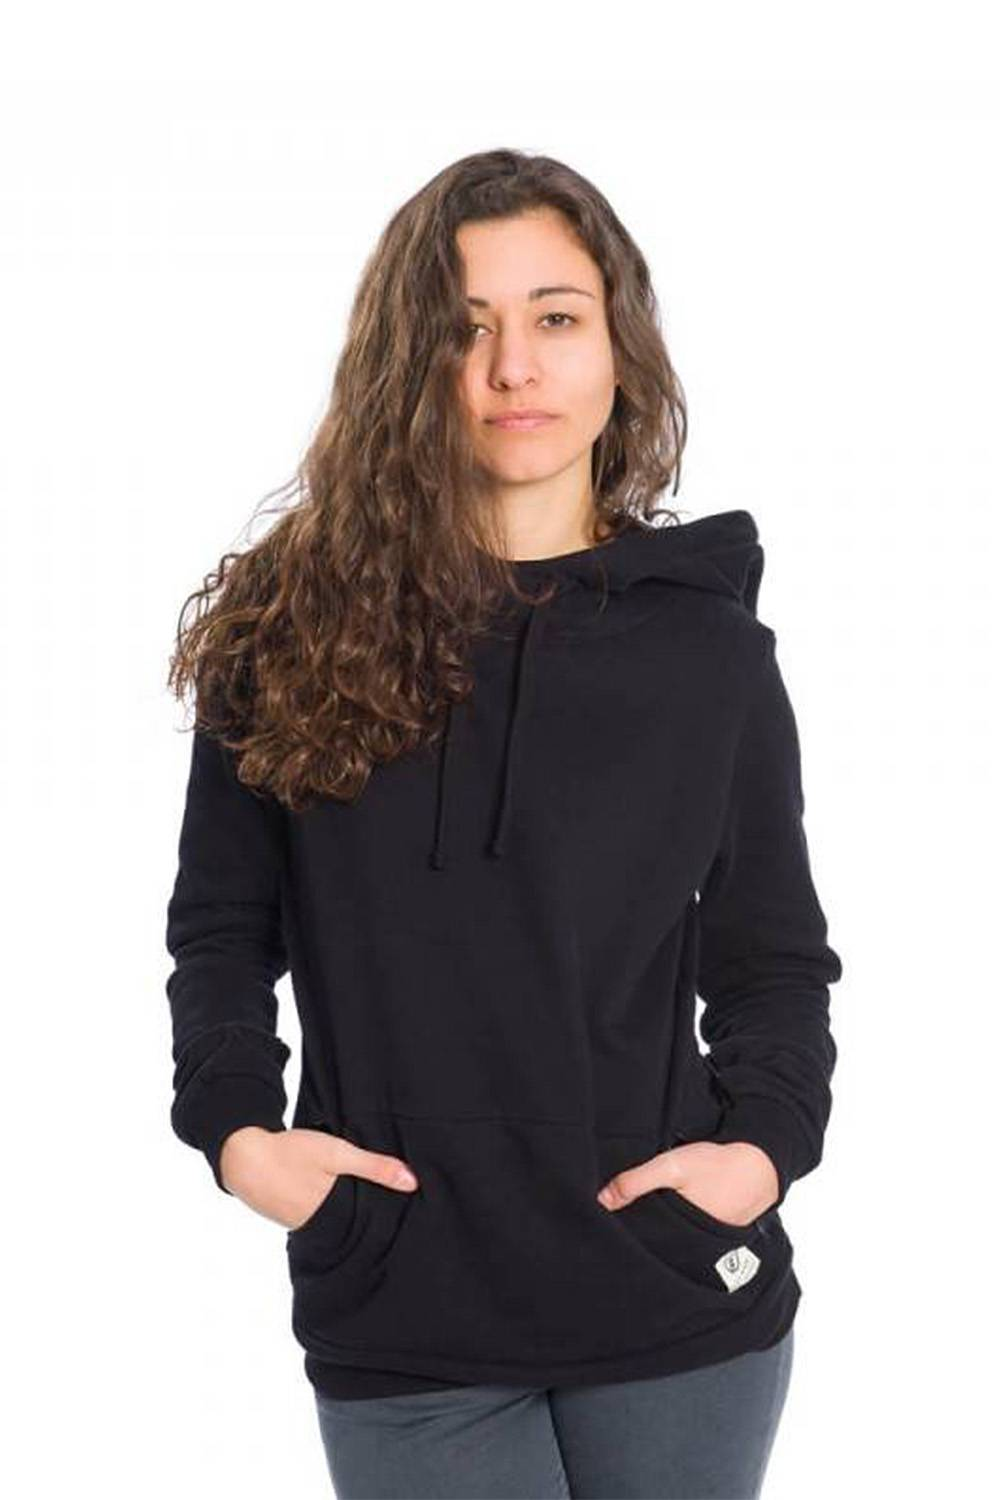 bleed clothing eco-friendly ethically-made